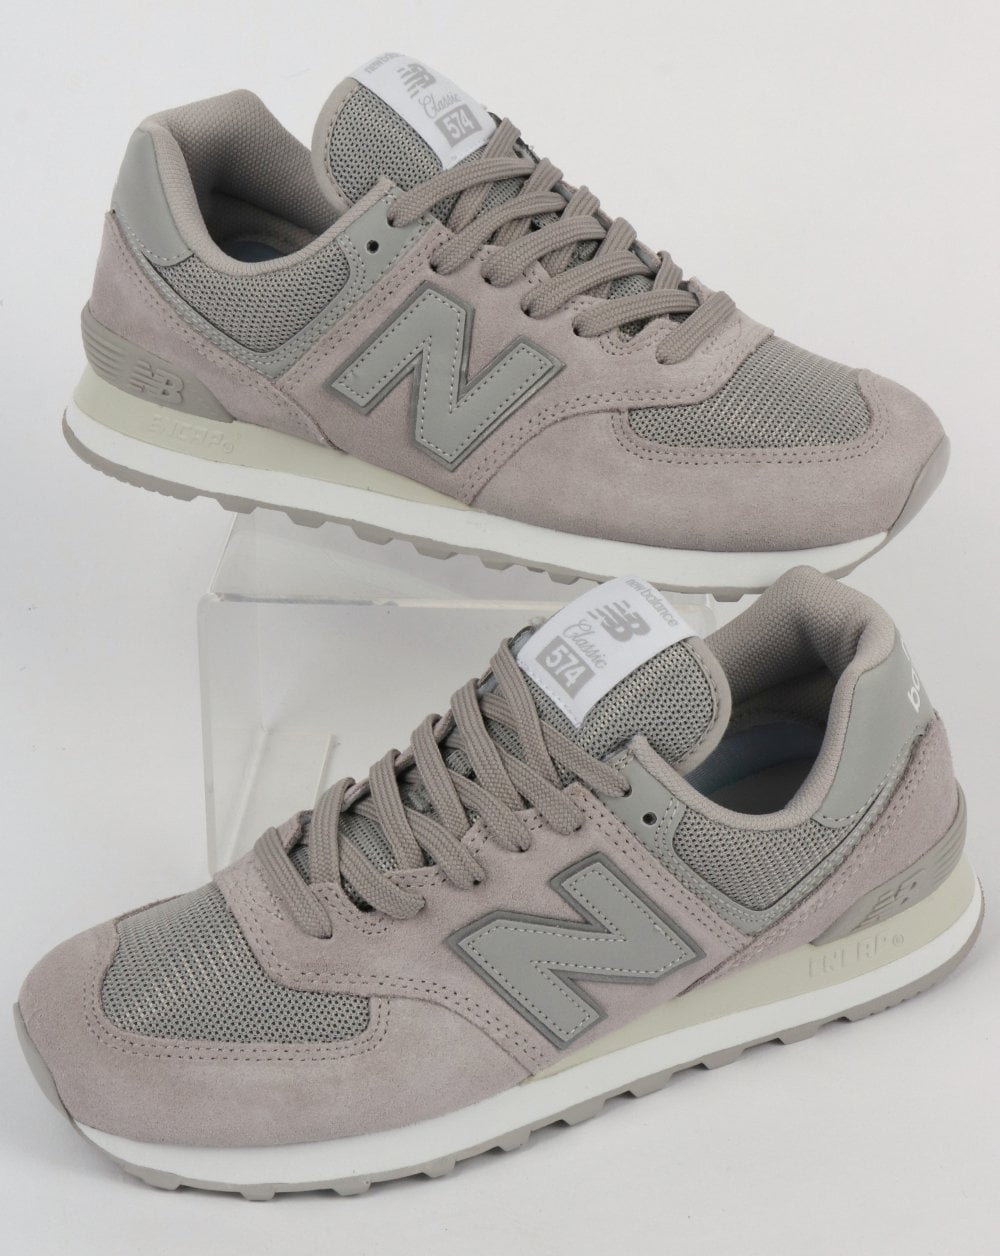 official photos 53c93 a8462 New Balance 574 Trainers Rain Cloud